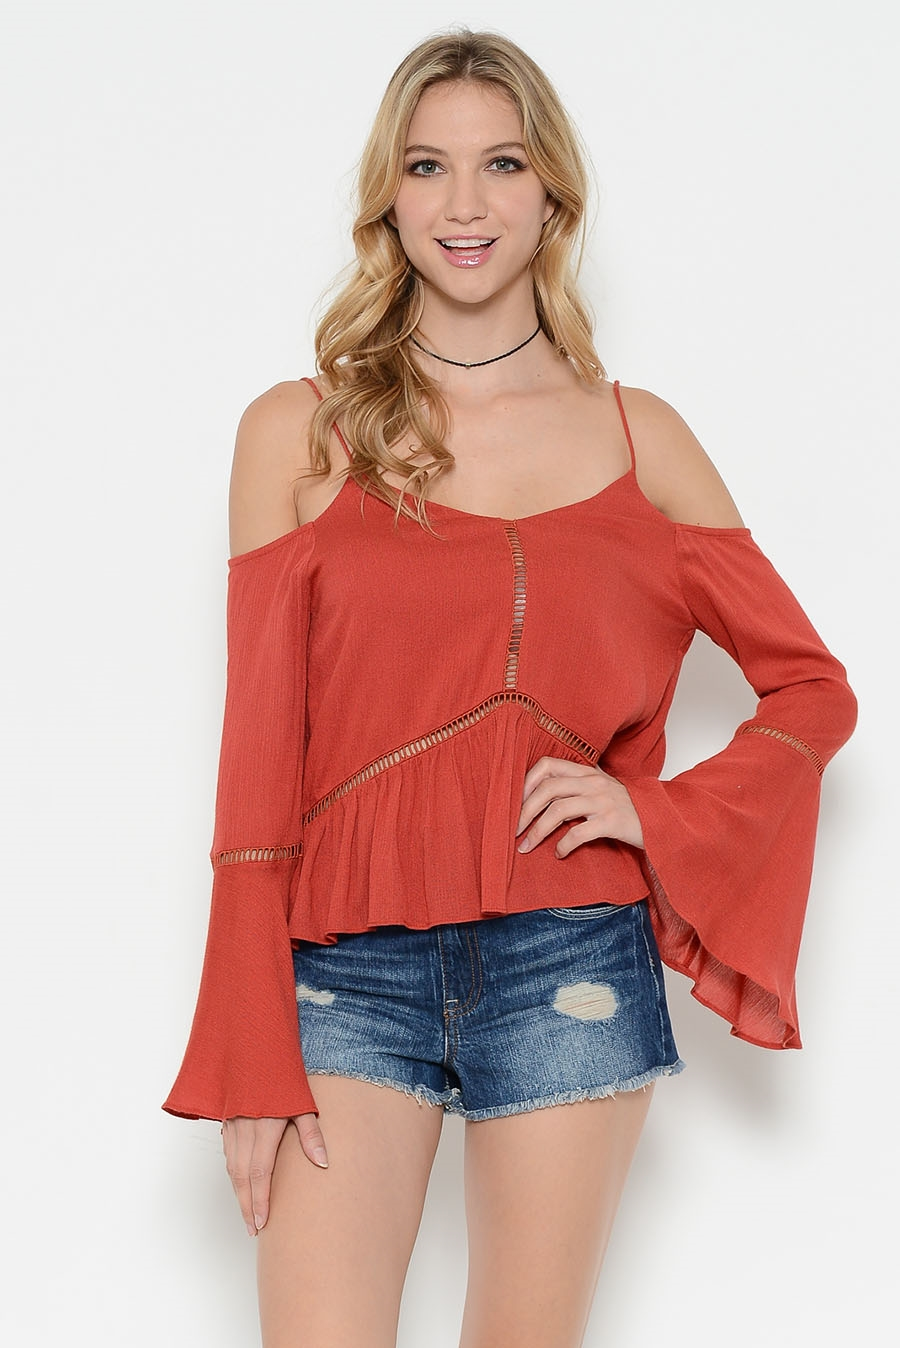 OFF SHOULDER LACE TRIM TOP - orangeshine.com